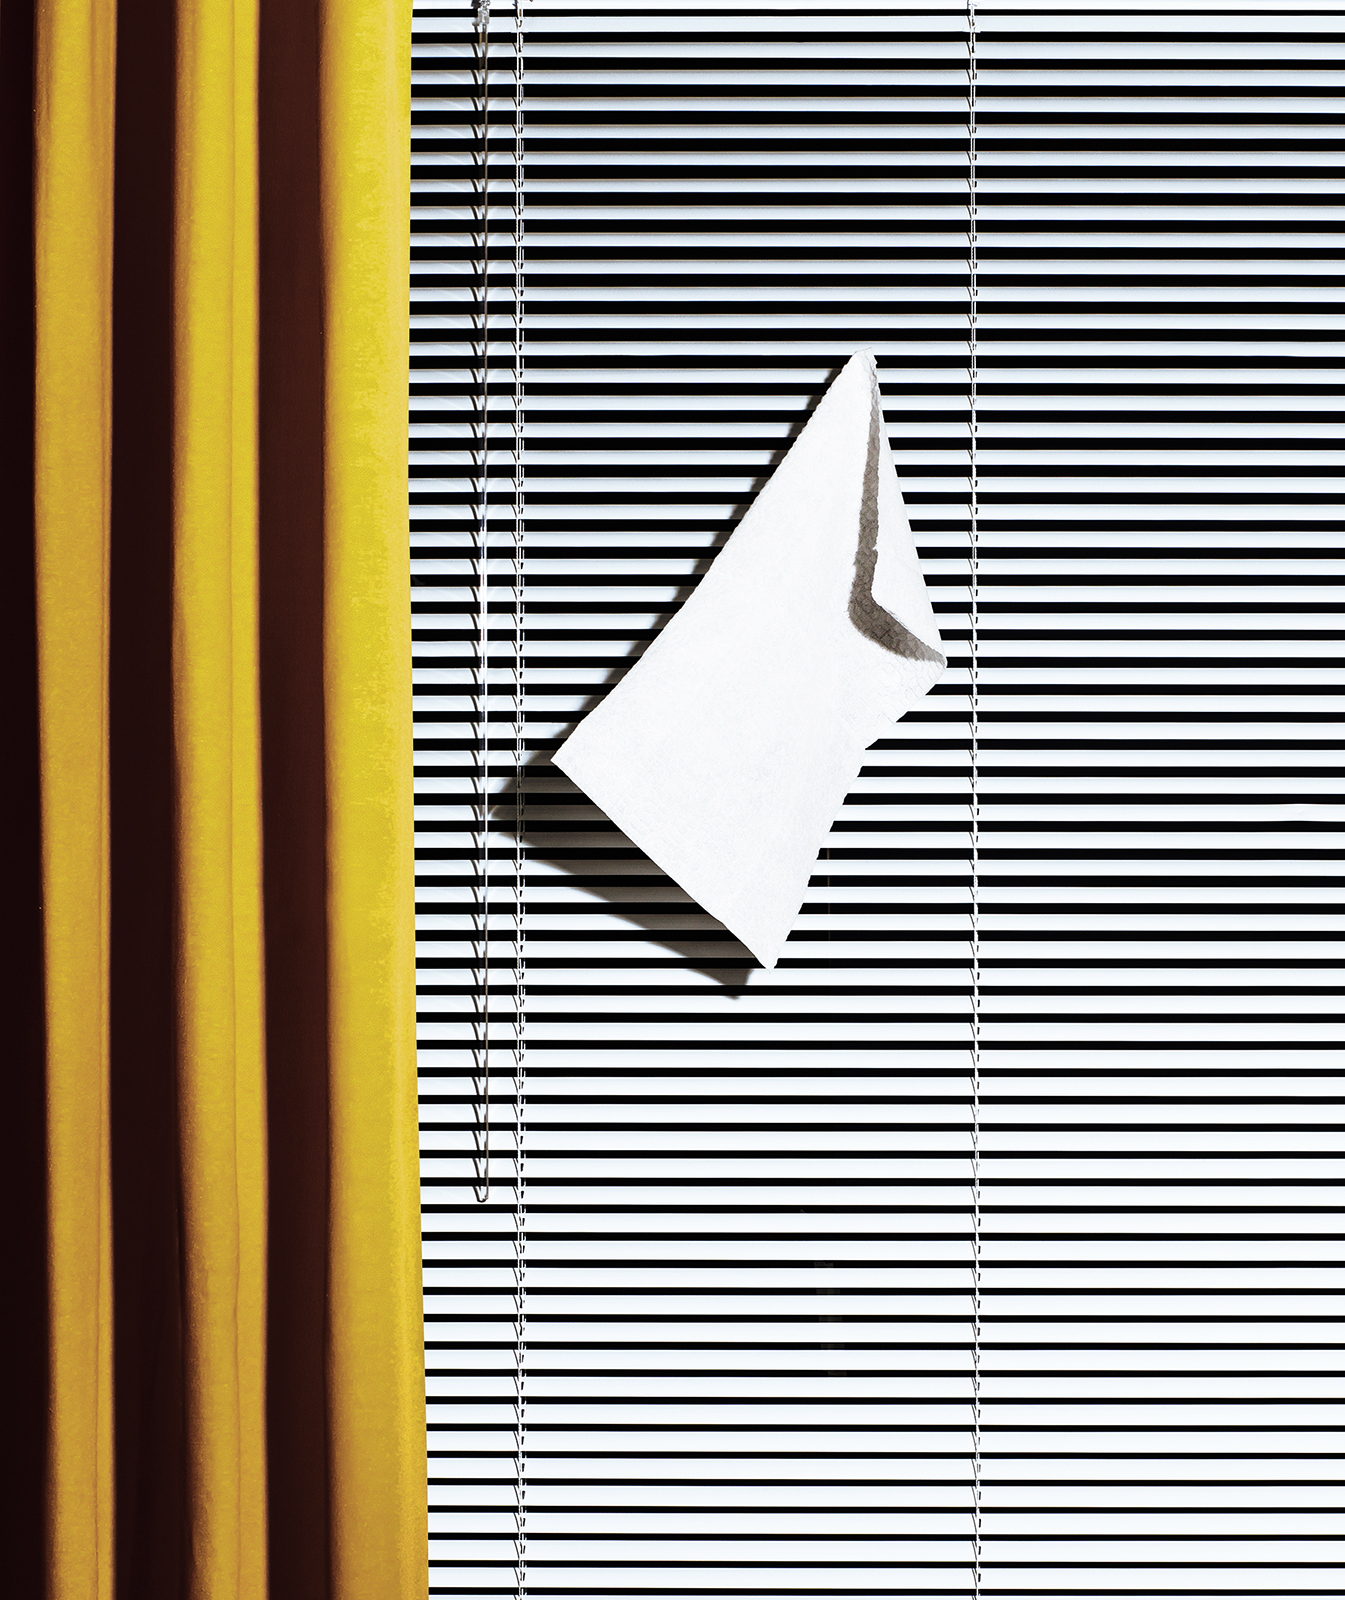 Blinds with cleaning cloth